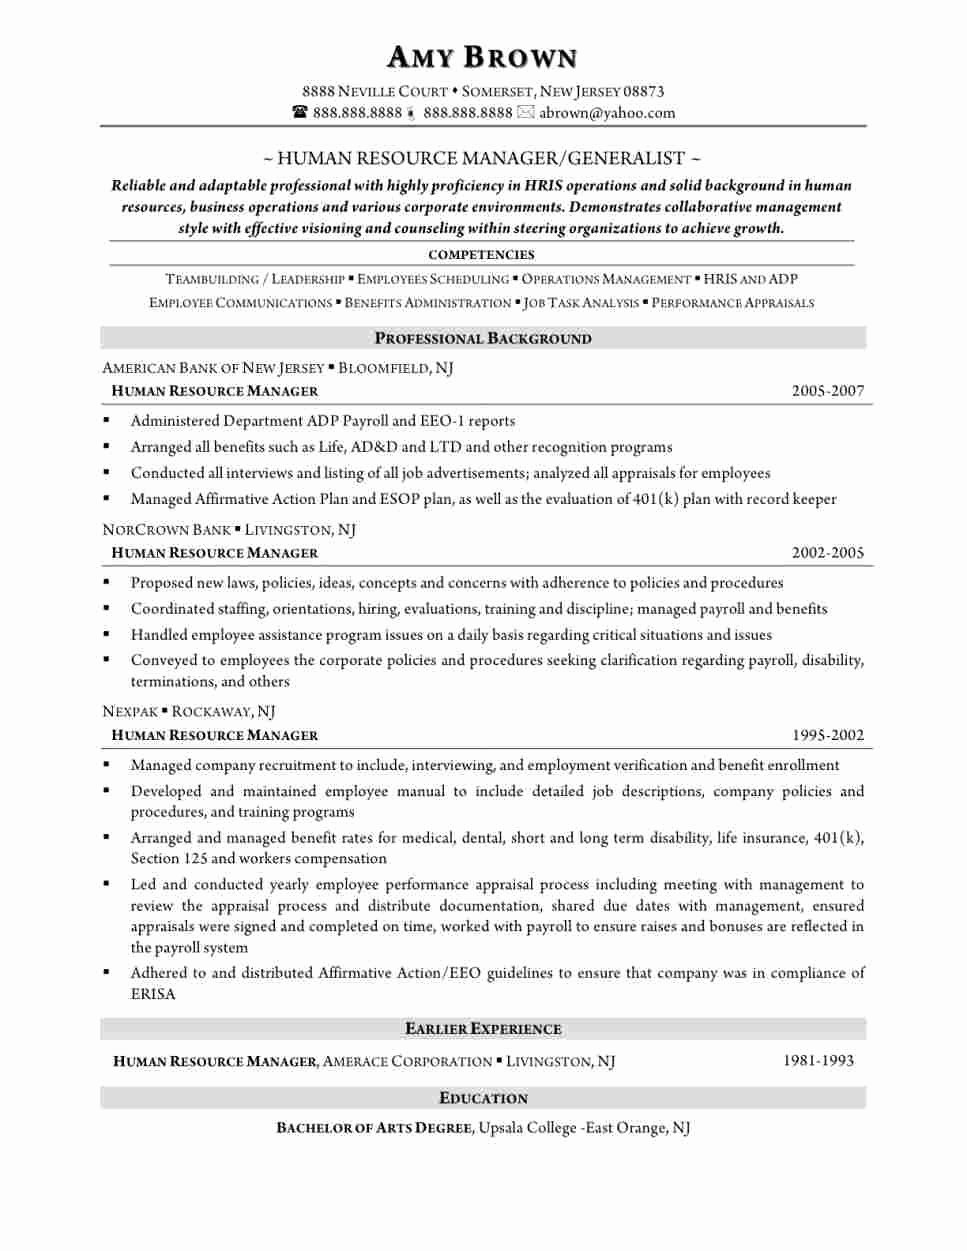 Sample Cover Letter for Human Resources assistant